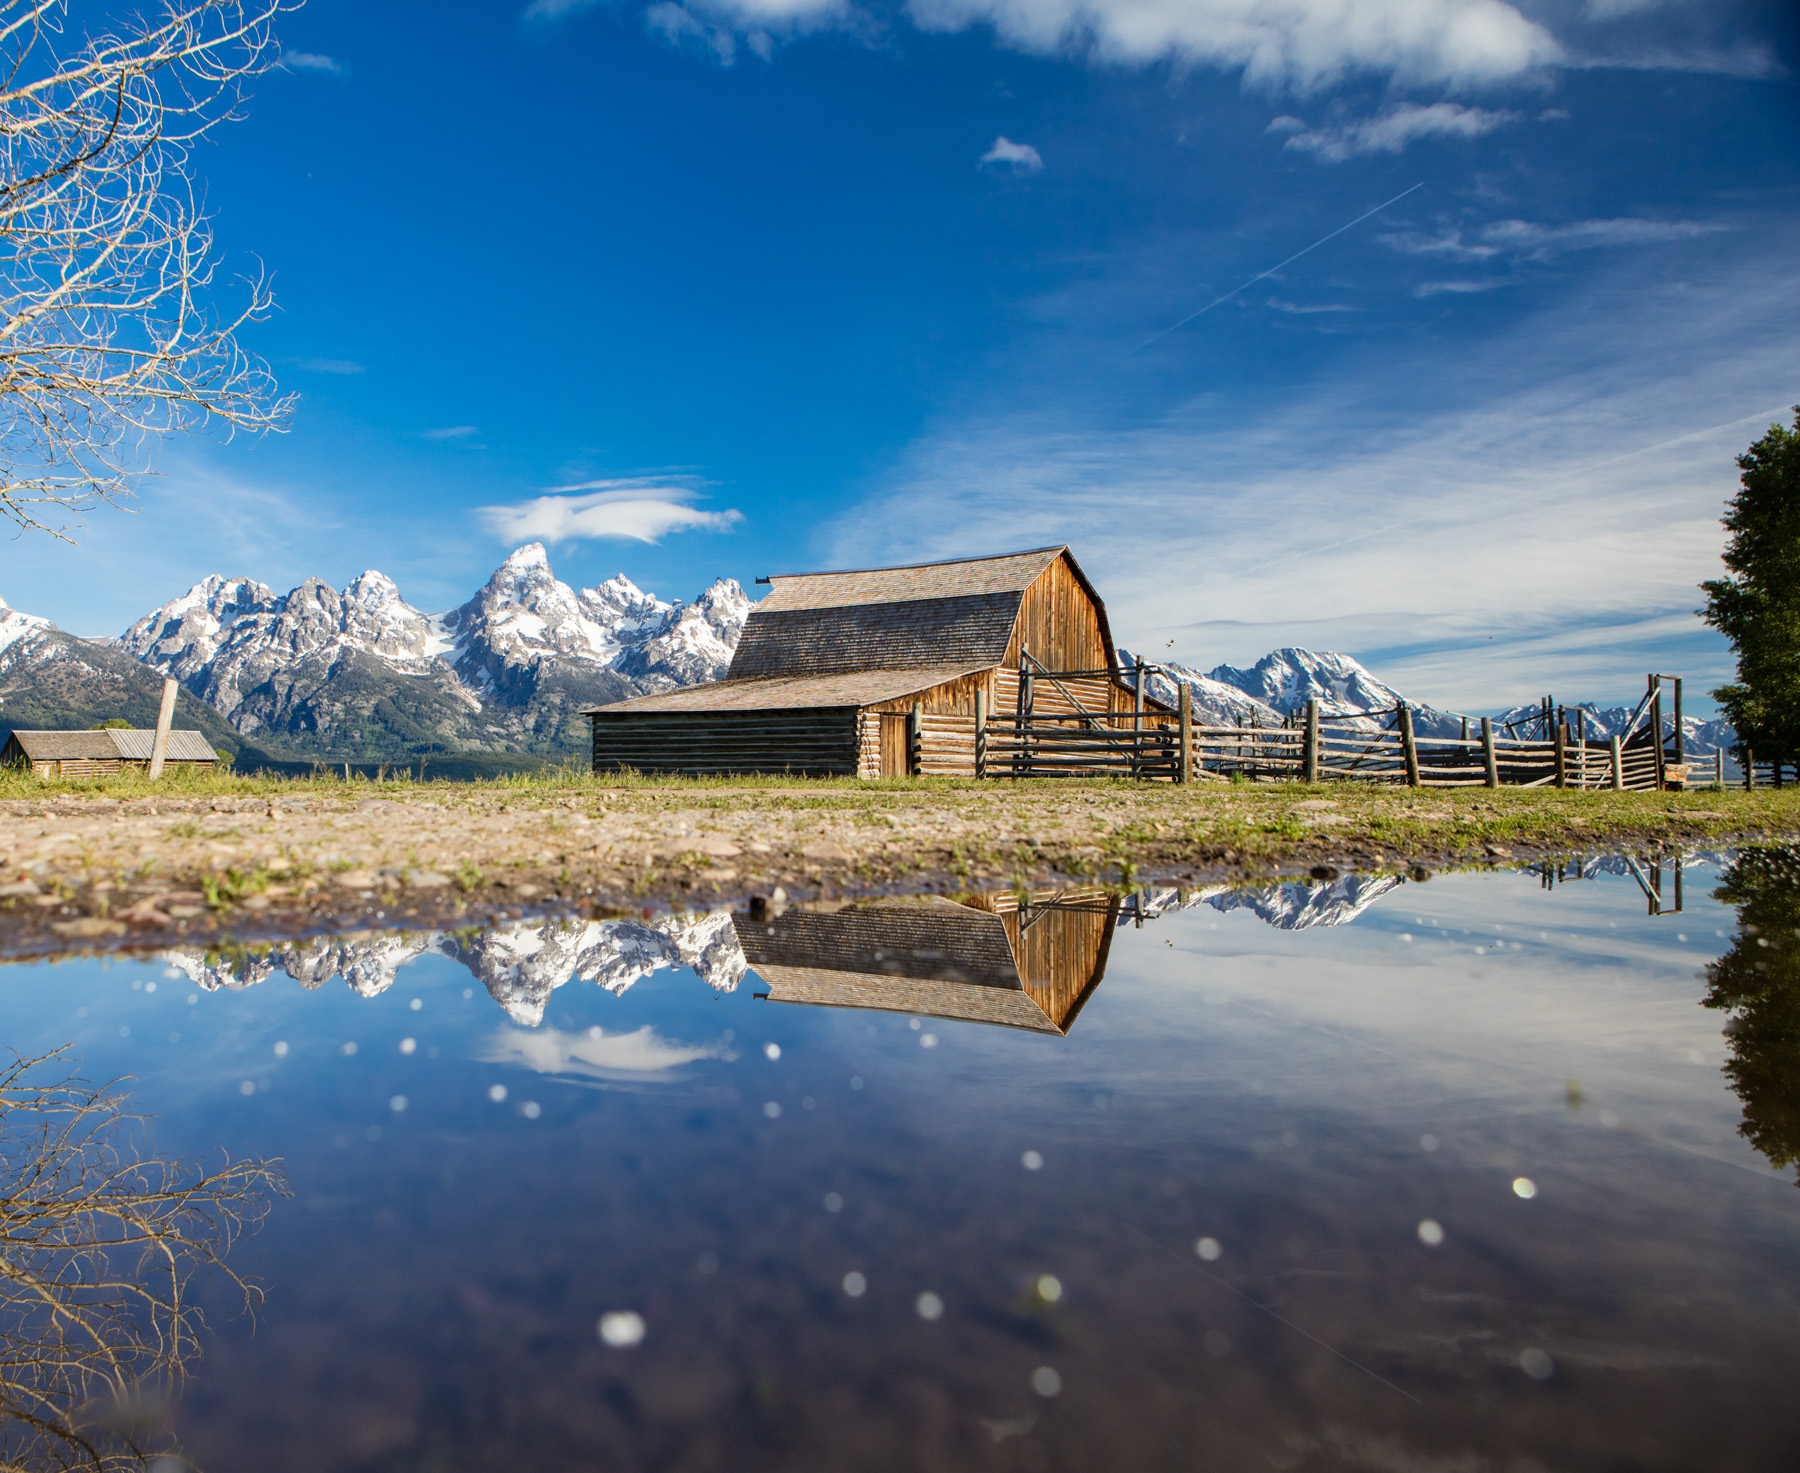 Moulton Barn on Mormon row in Grand Teton National Park reflected in puddle.